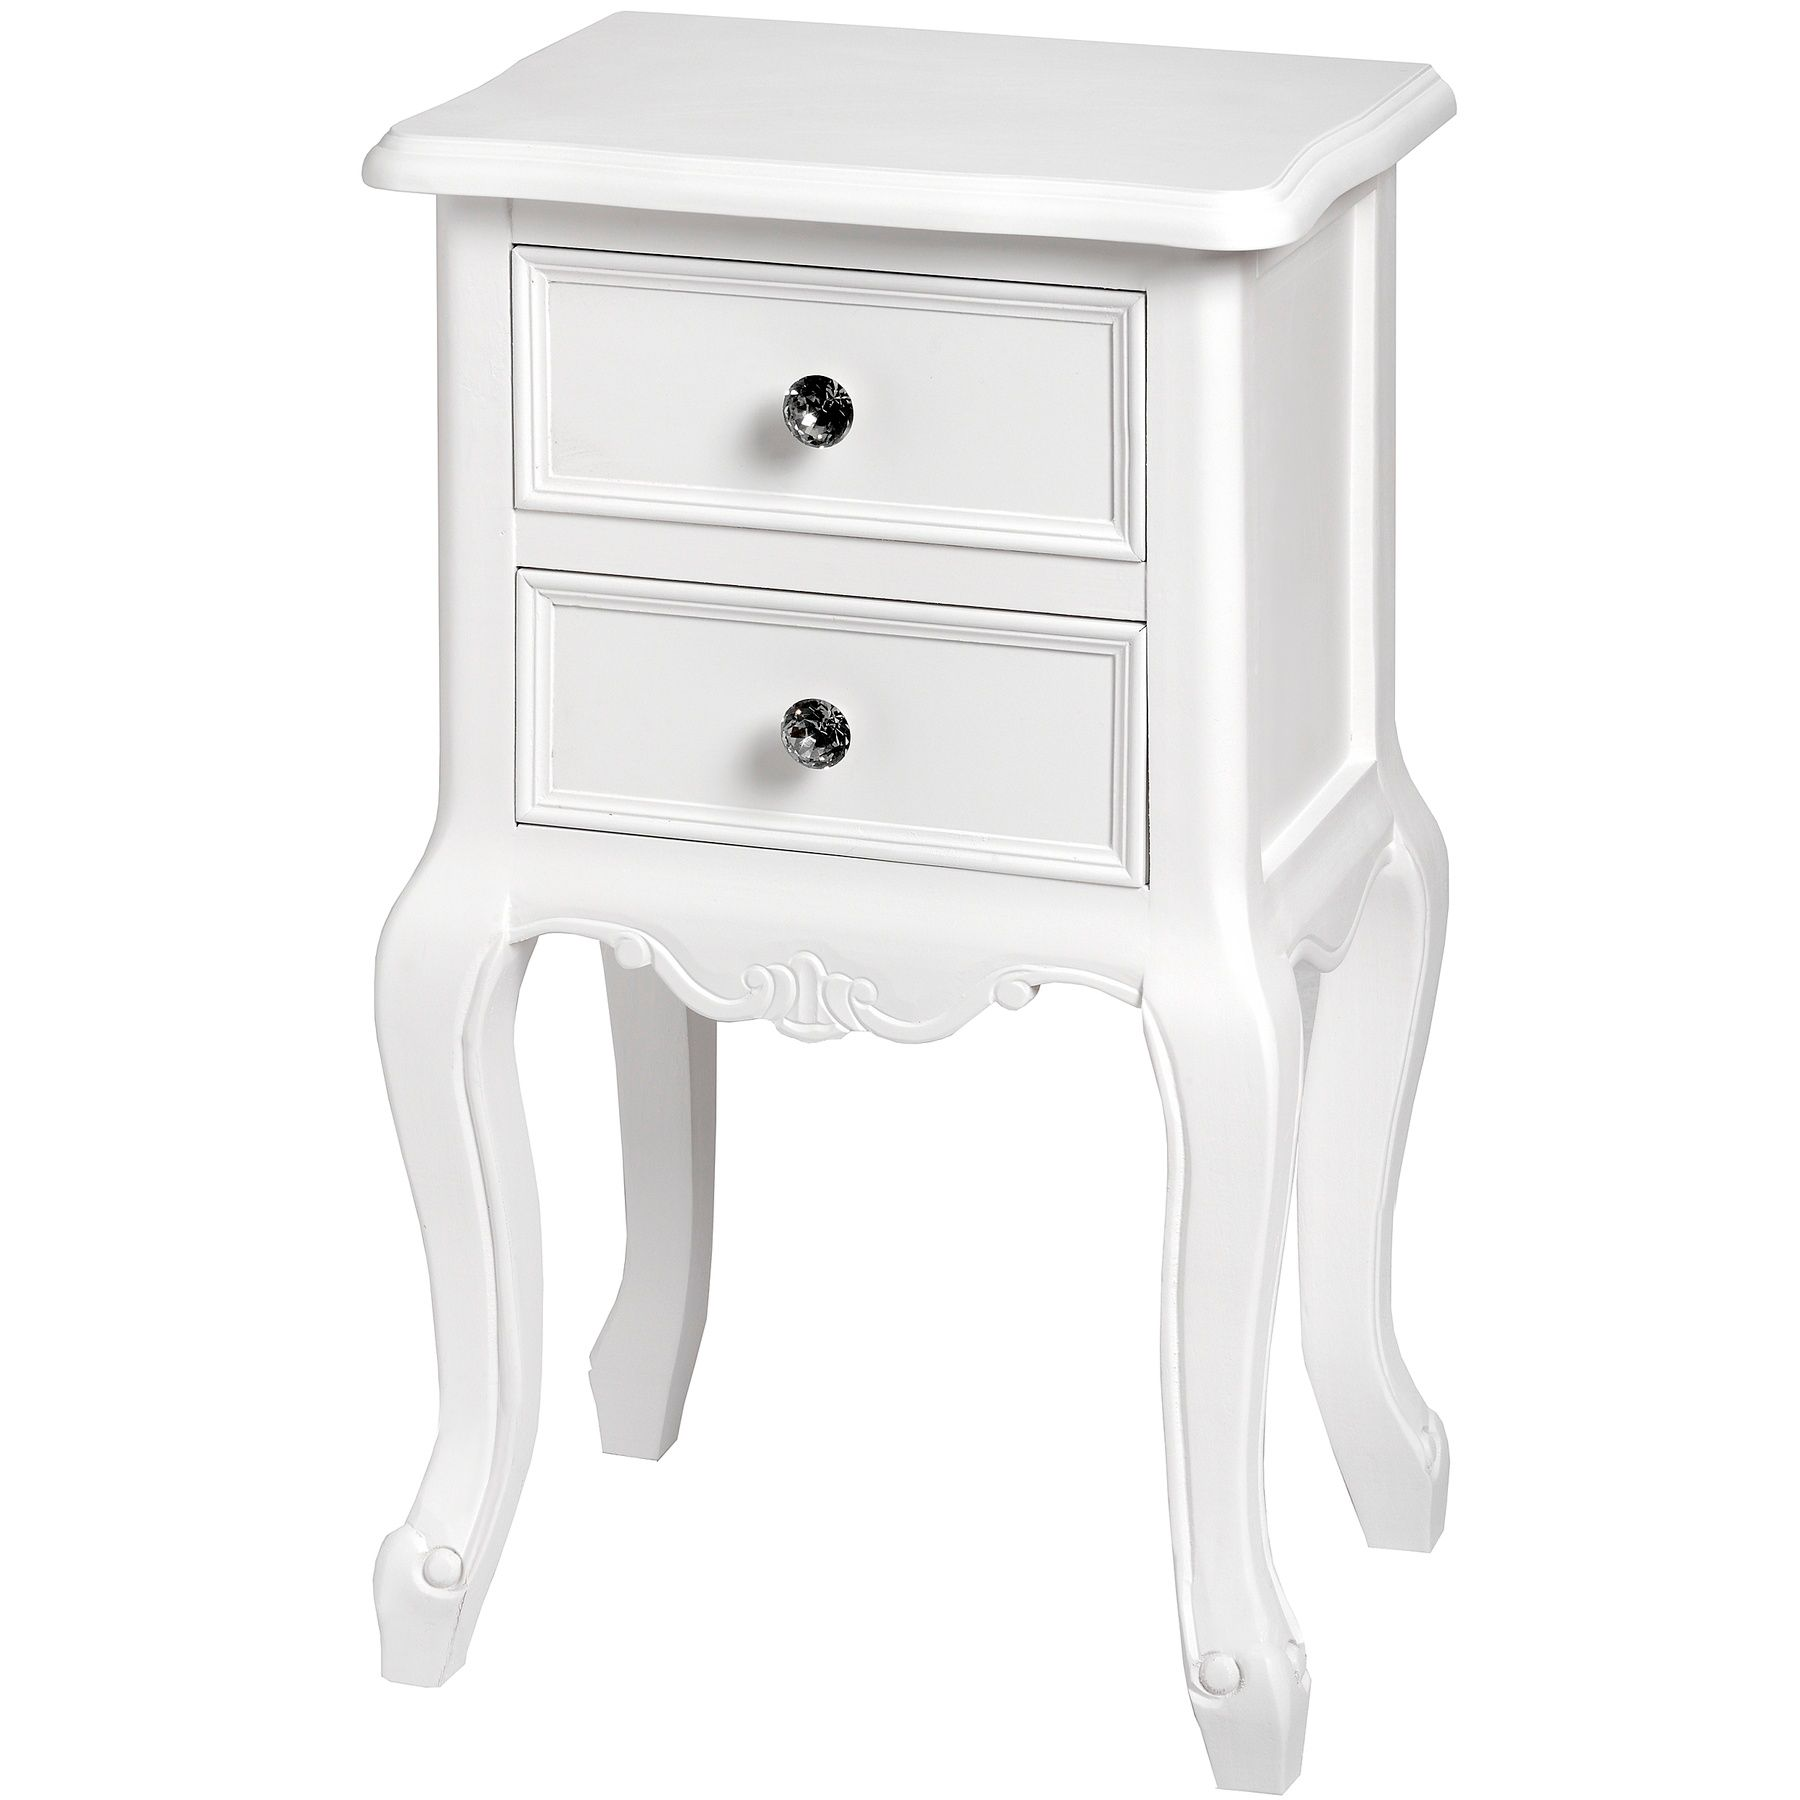 Venice Range Bedside Lamp Table In Rustic White